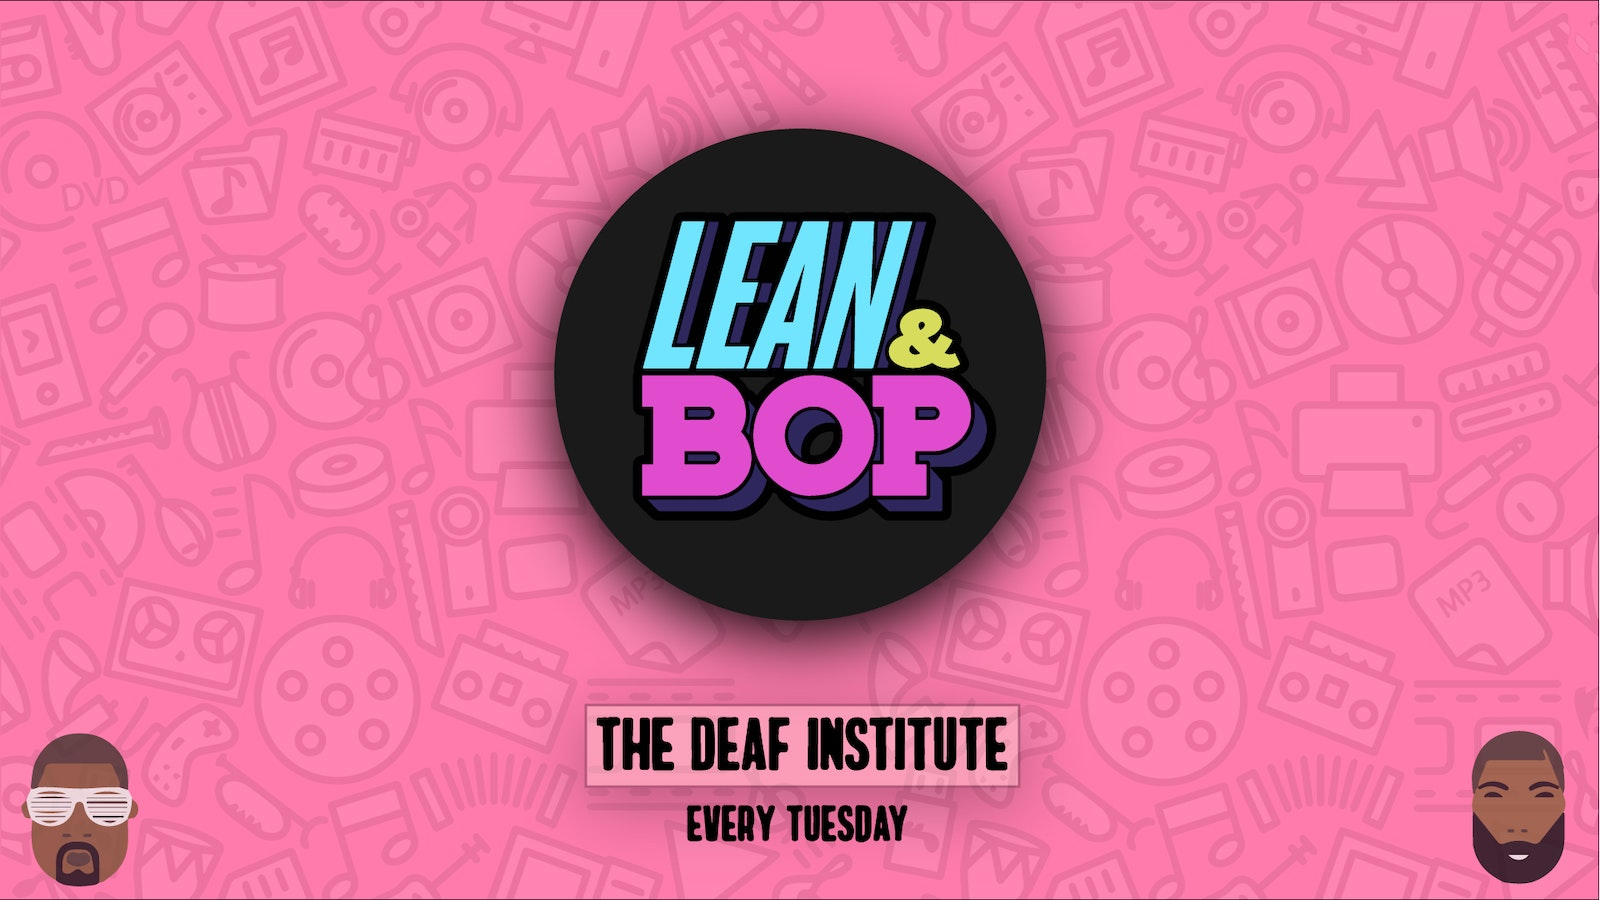 Lean & Bop – Freshers opening party